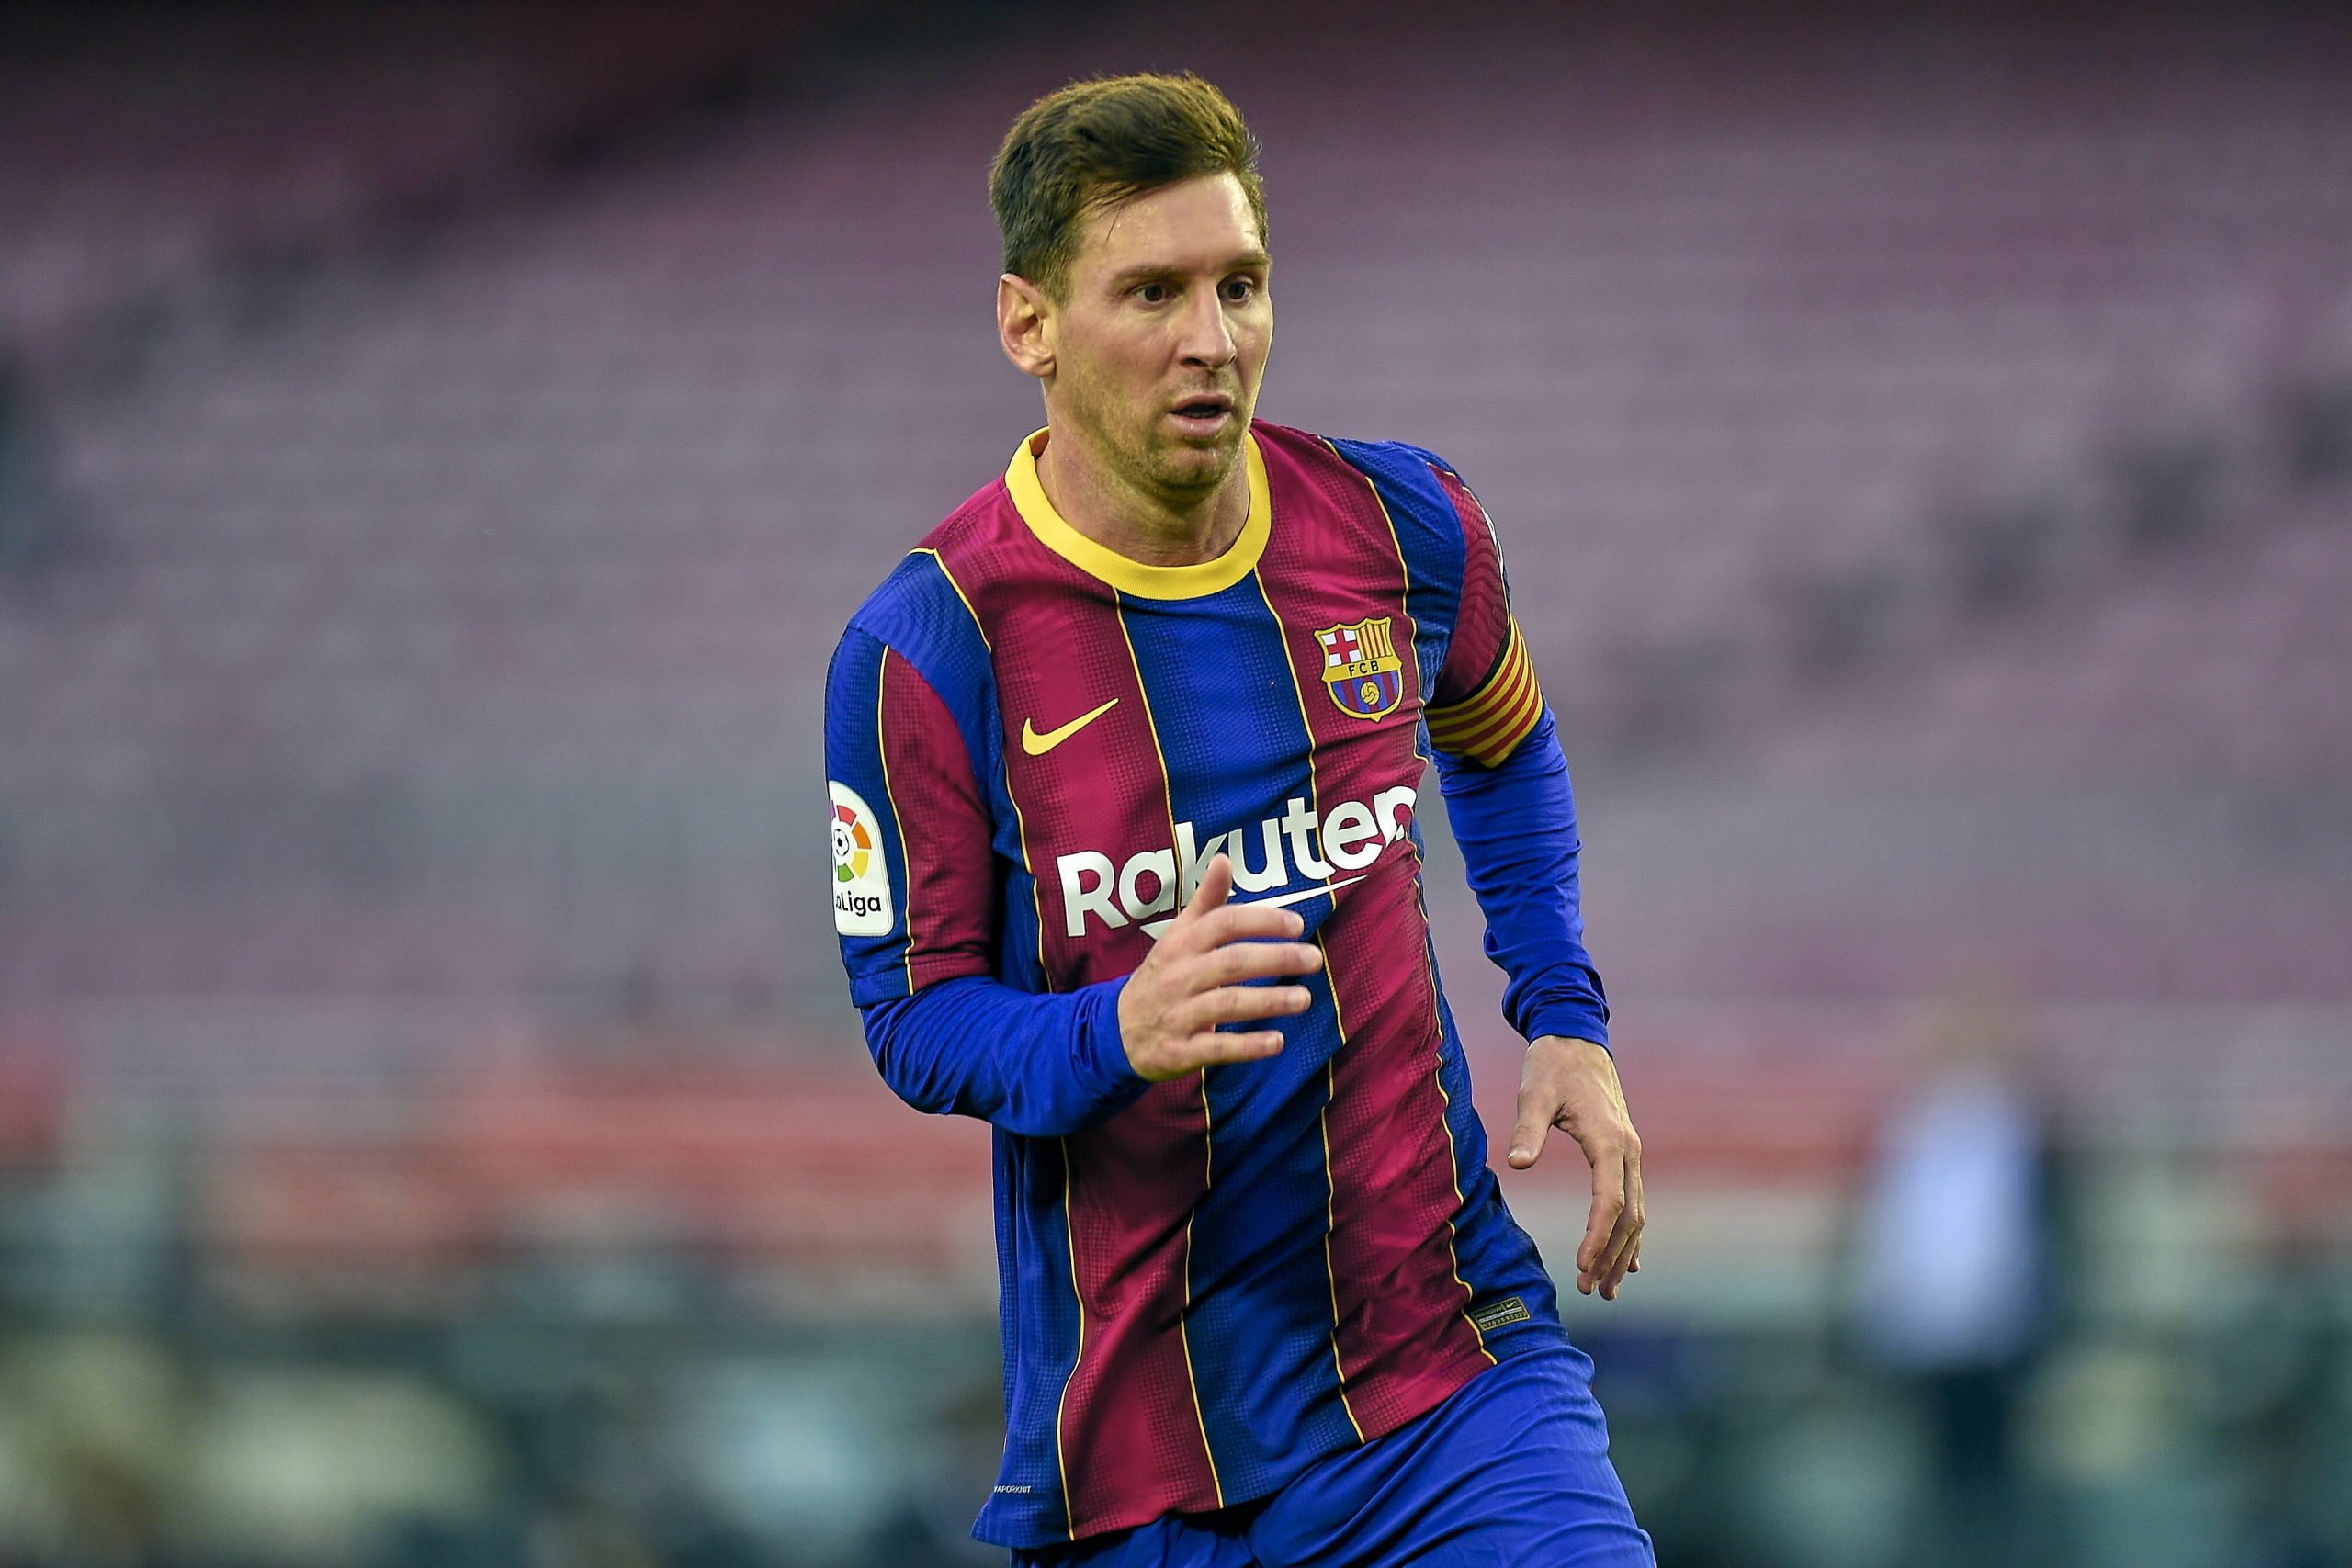 Lionel Messi moves to Beckham in Miami?